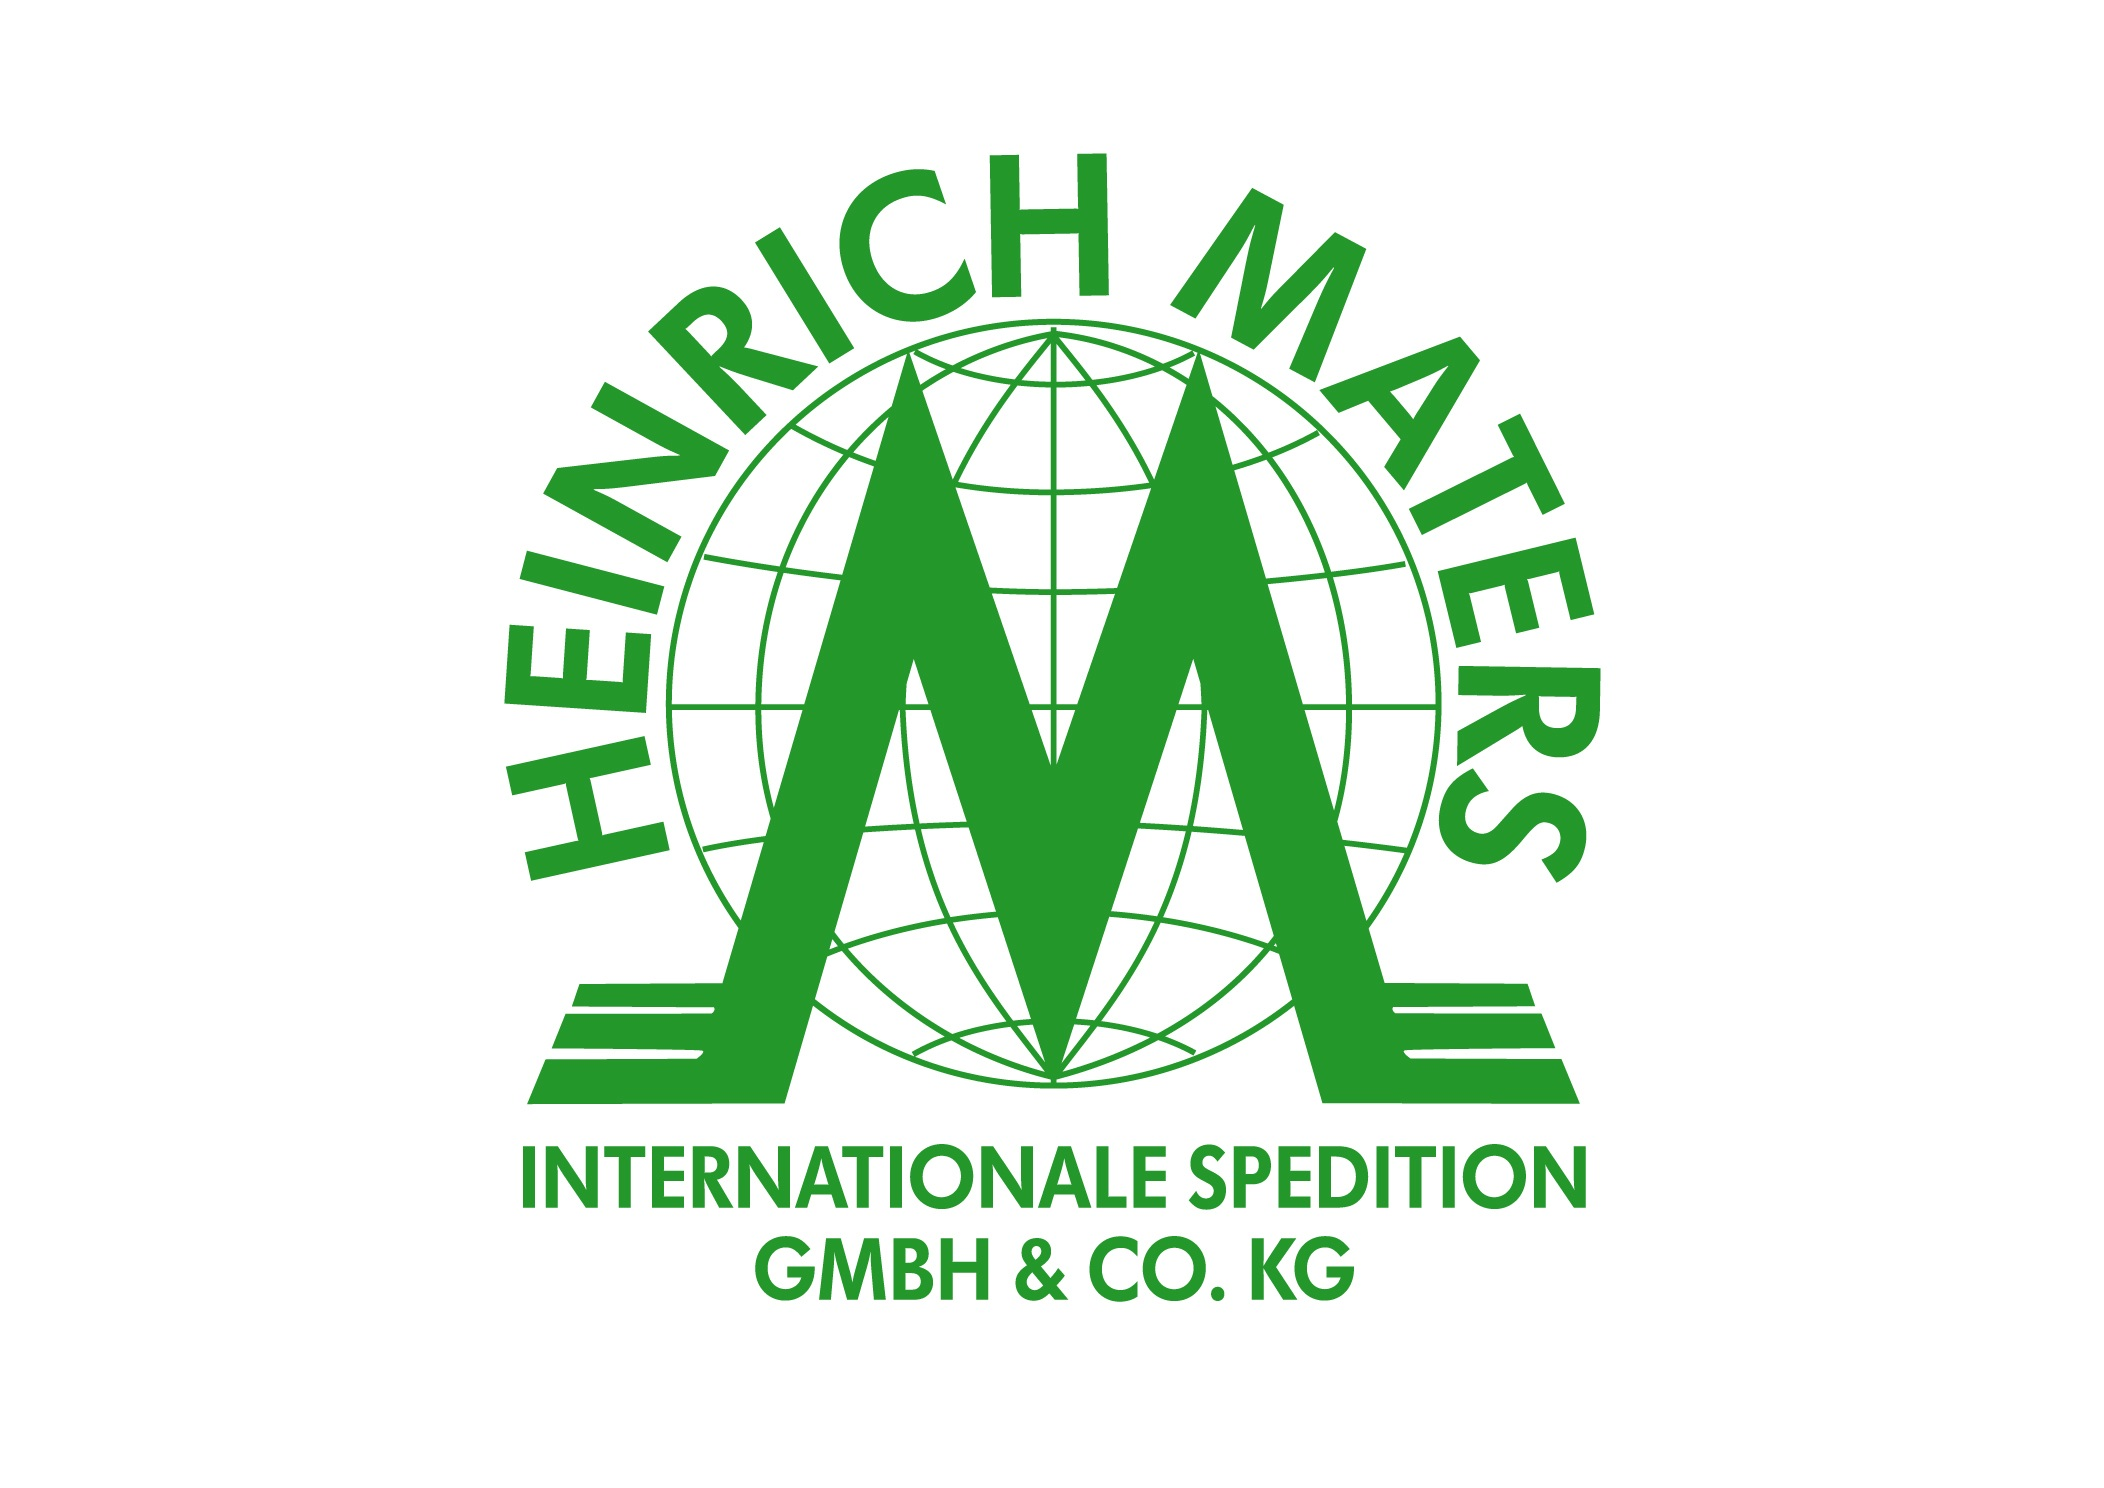 Heinrich Maters GmbH & Co. KG